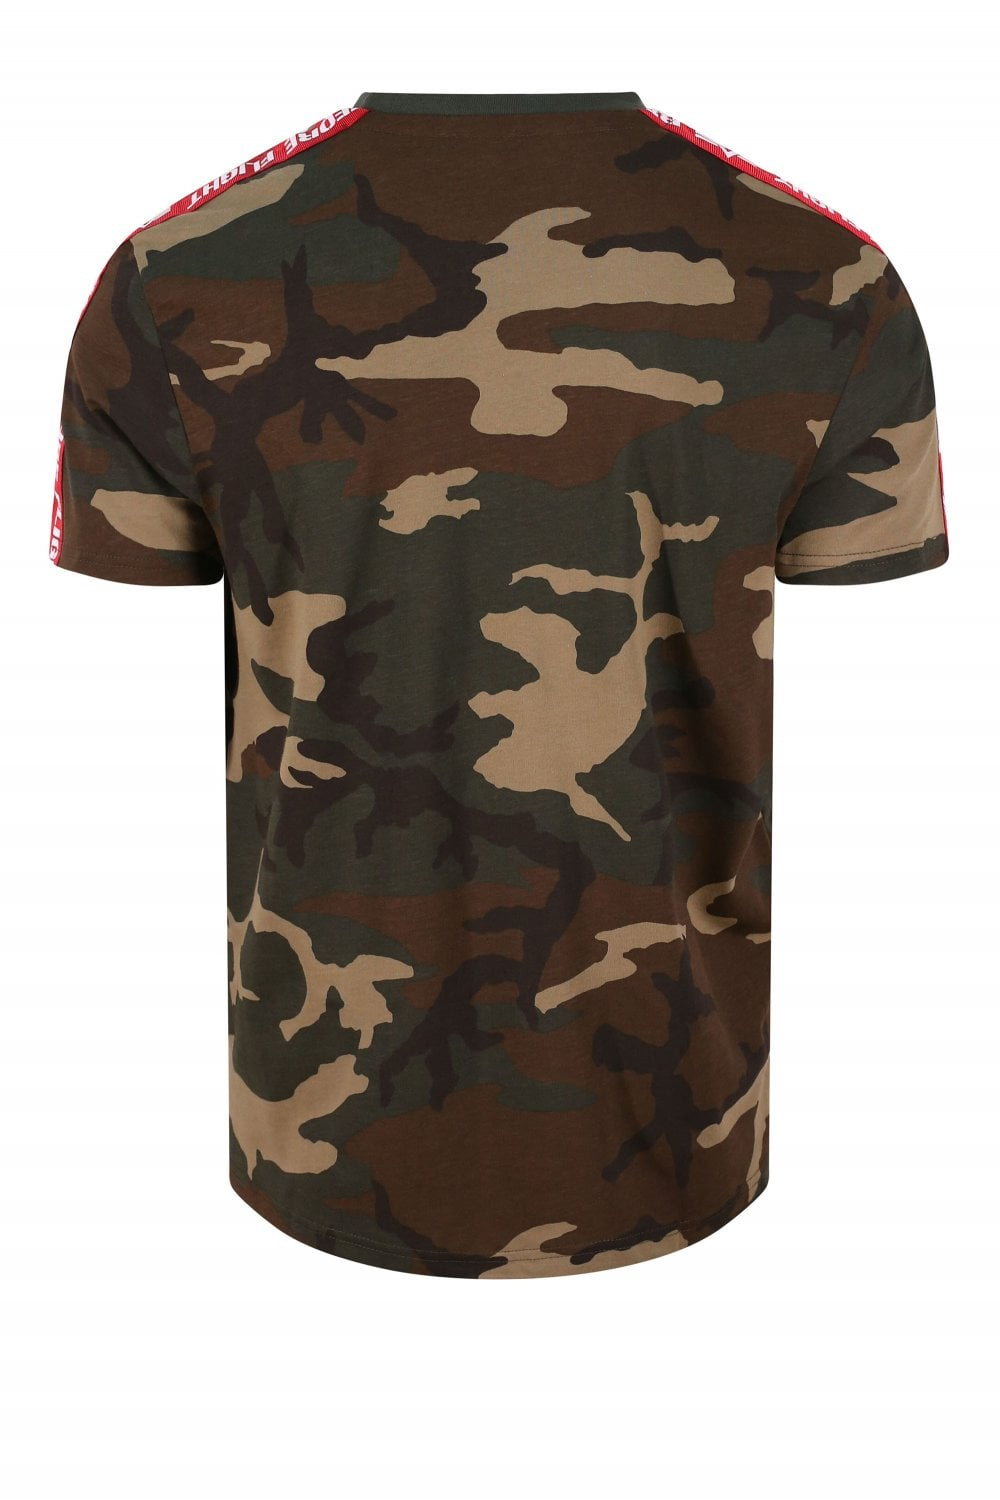 huge selection of 20b94 56f38 Remove Before Flight Taped Woodland Camo T-Shirt